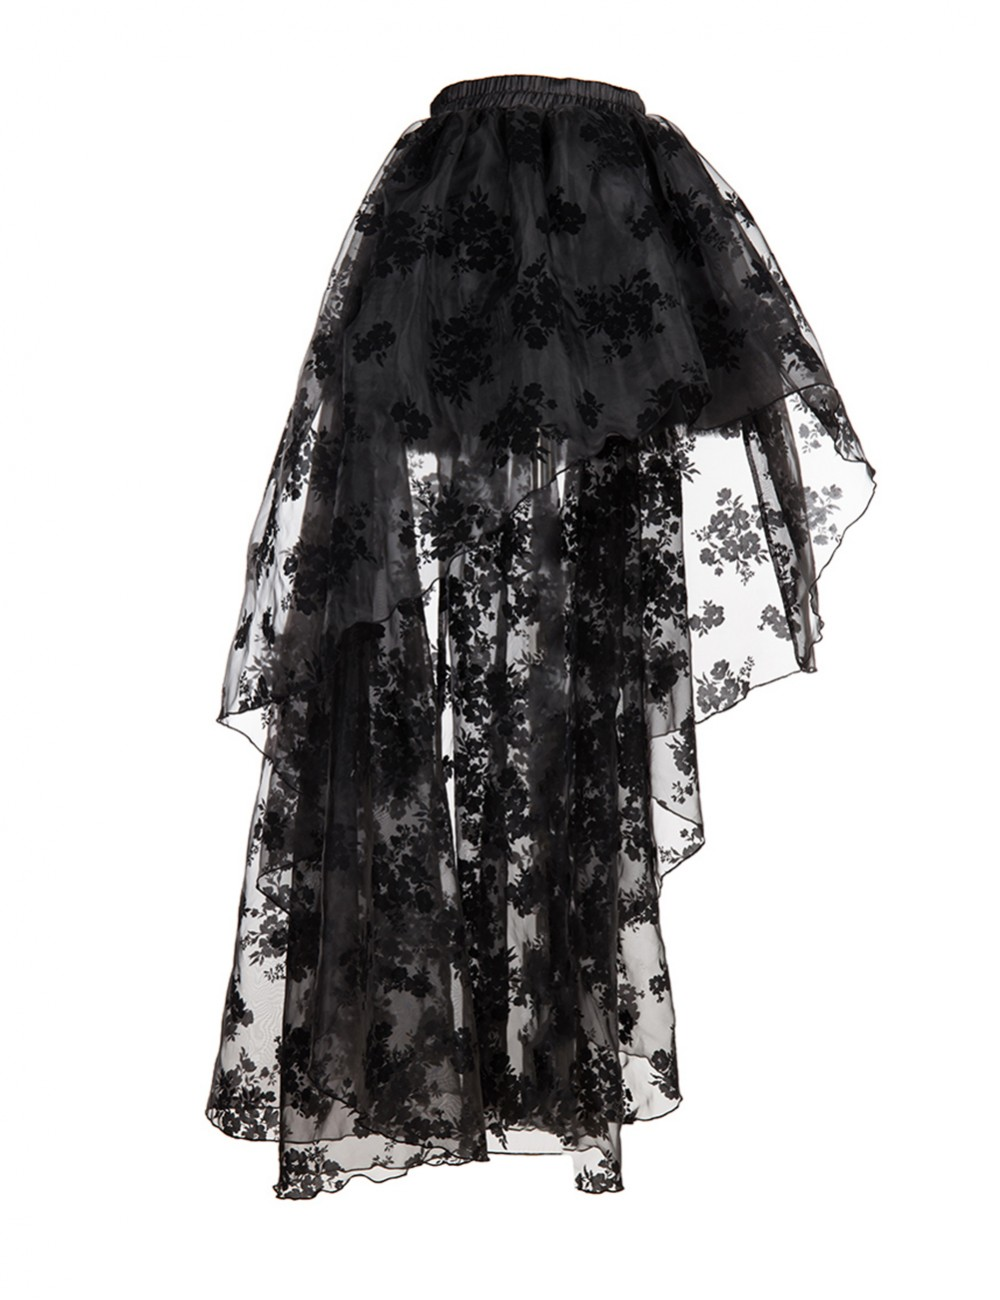 Hourglass Silhouette Floral Lace Mesh Black Corset Skirt Sets